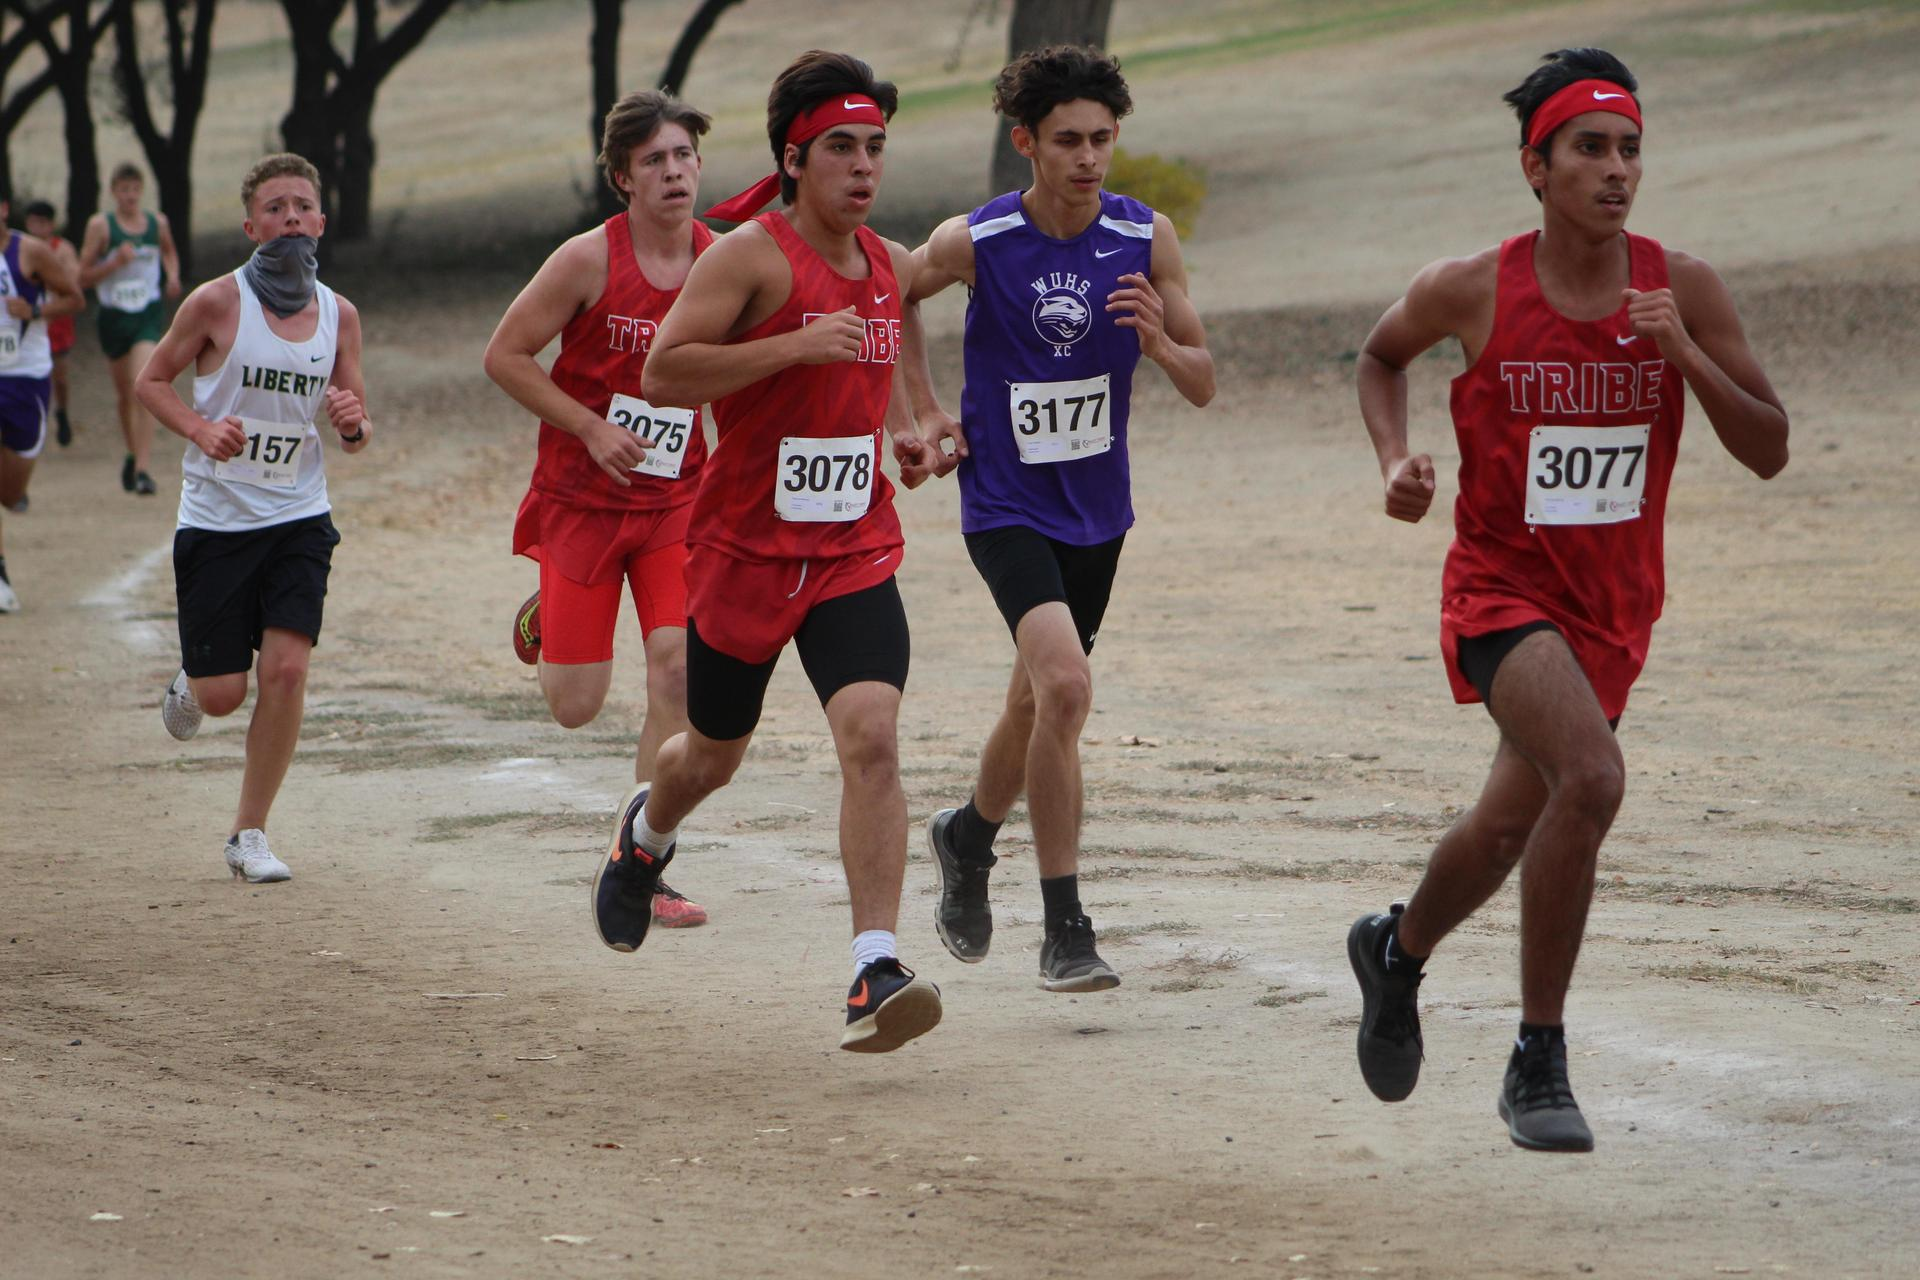 Nicholas Martinez, Nick Upton and Raymond Mendoza racing at woodward park